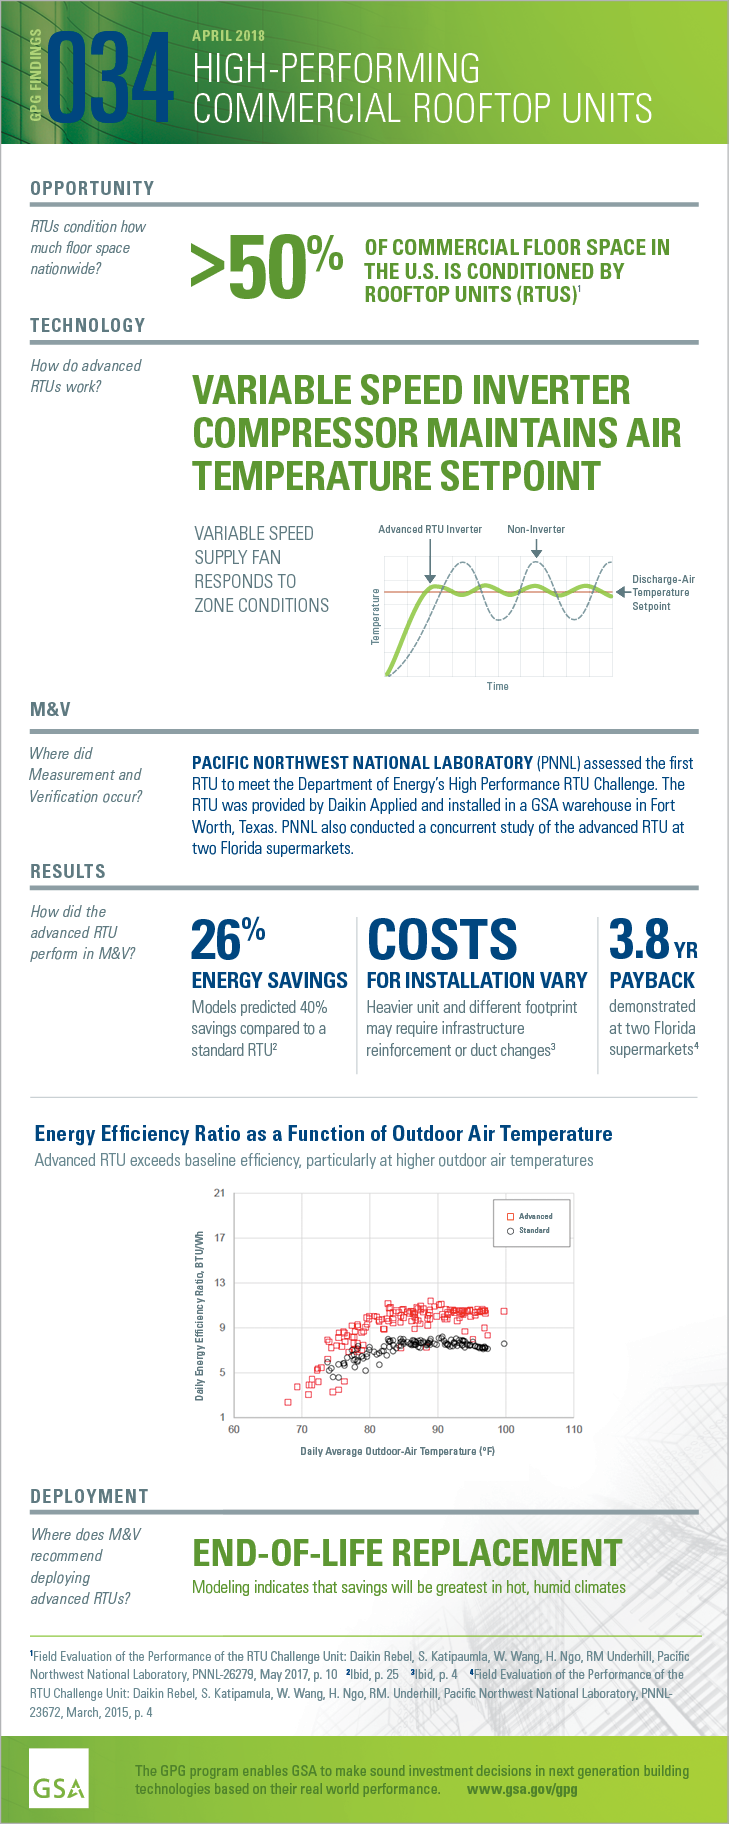 GPG Findings 034, April 2018, Advanced commercial rooftop units. Opportunity: RTUs condition how